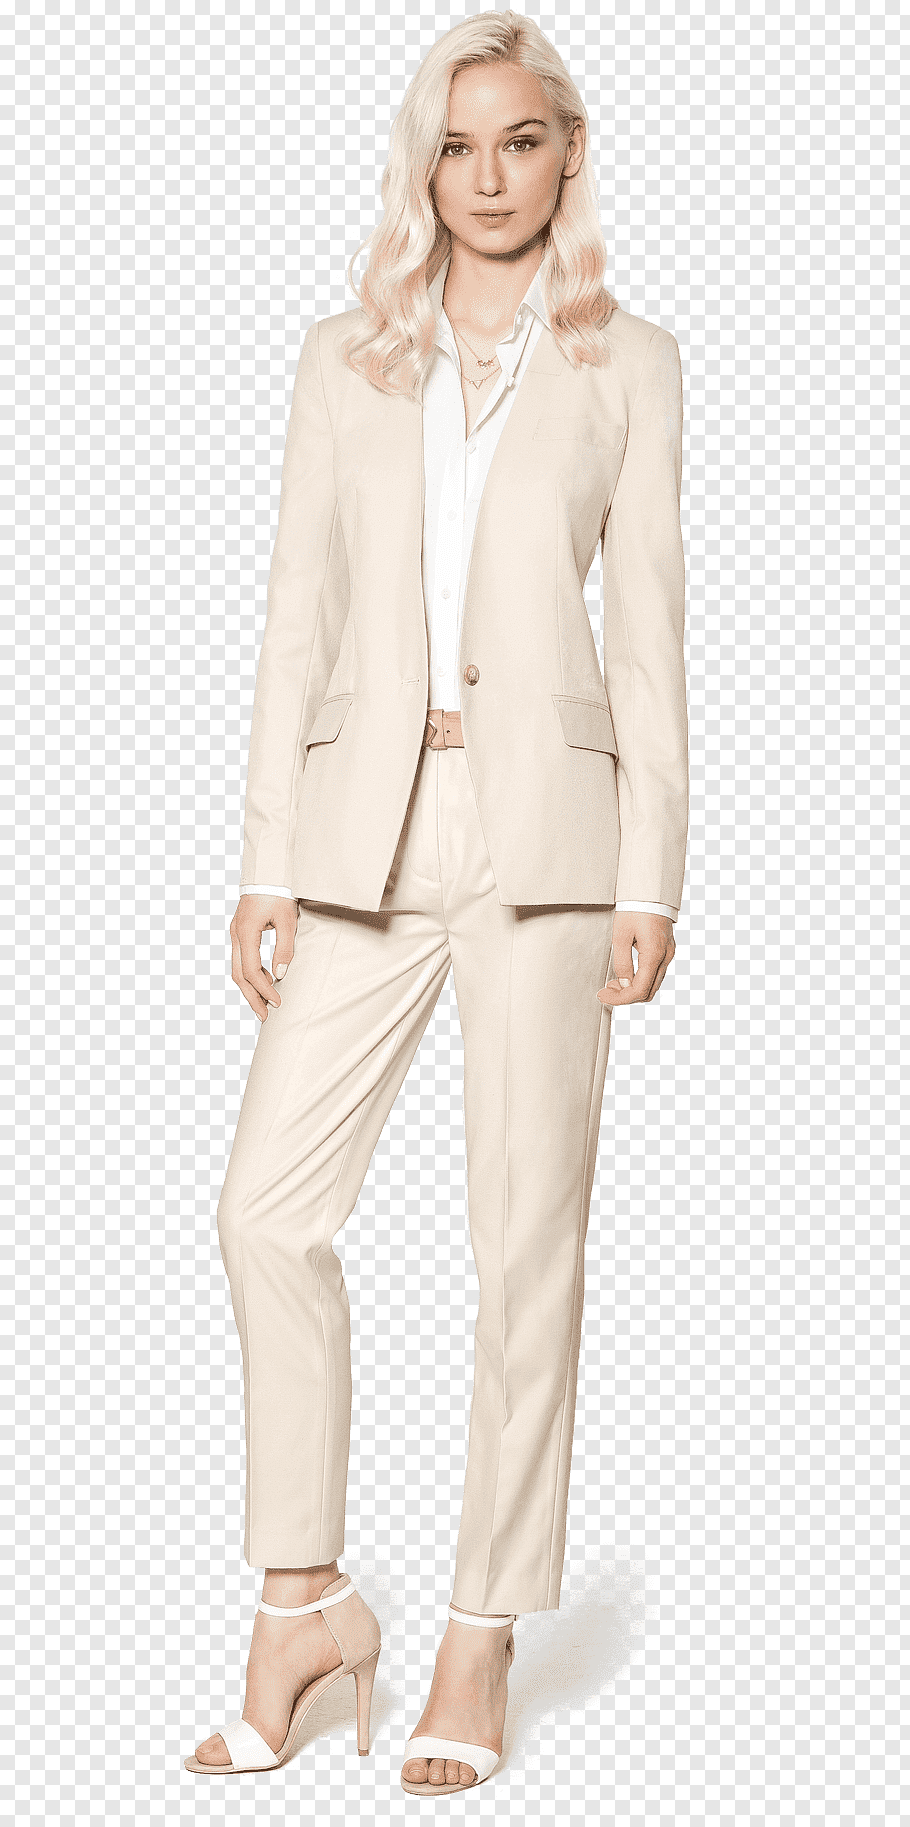 Pant Suits Jakkupuku Clothing Pants, suit woman free png.